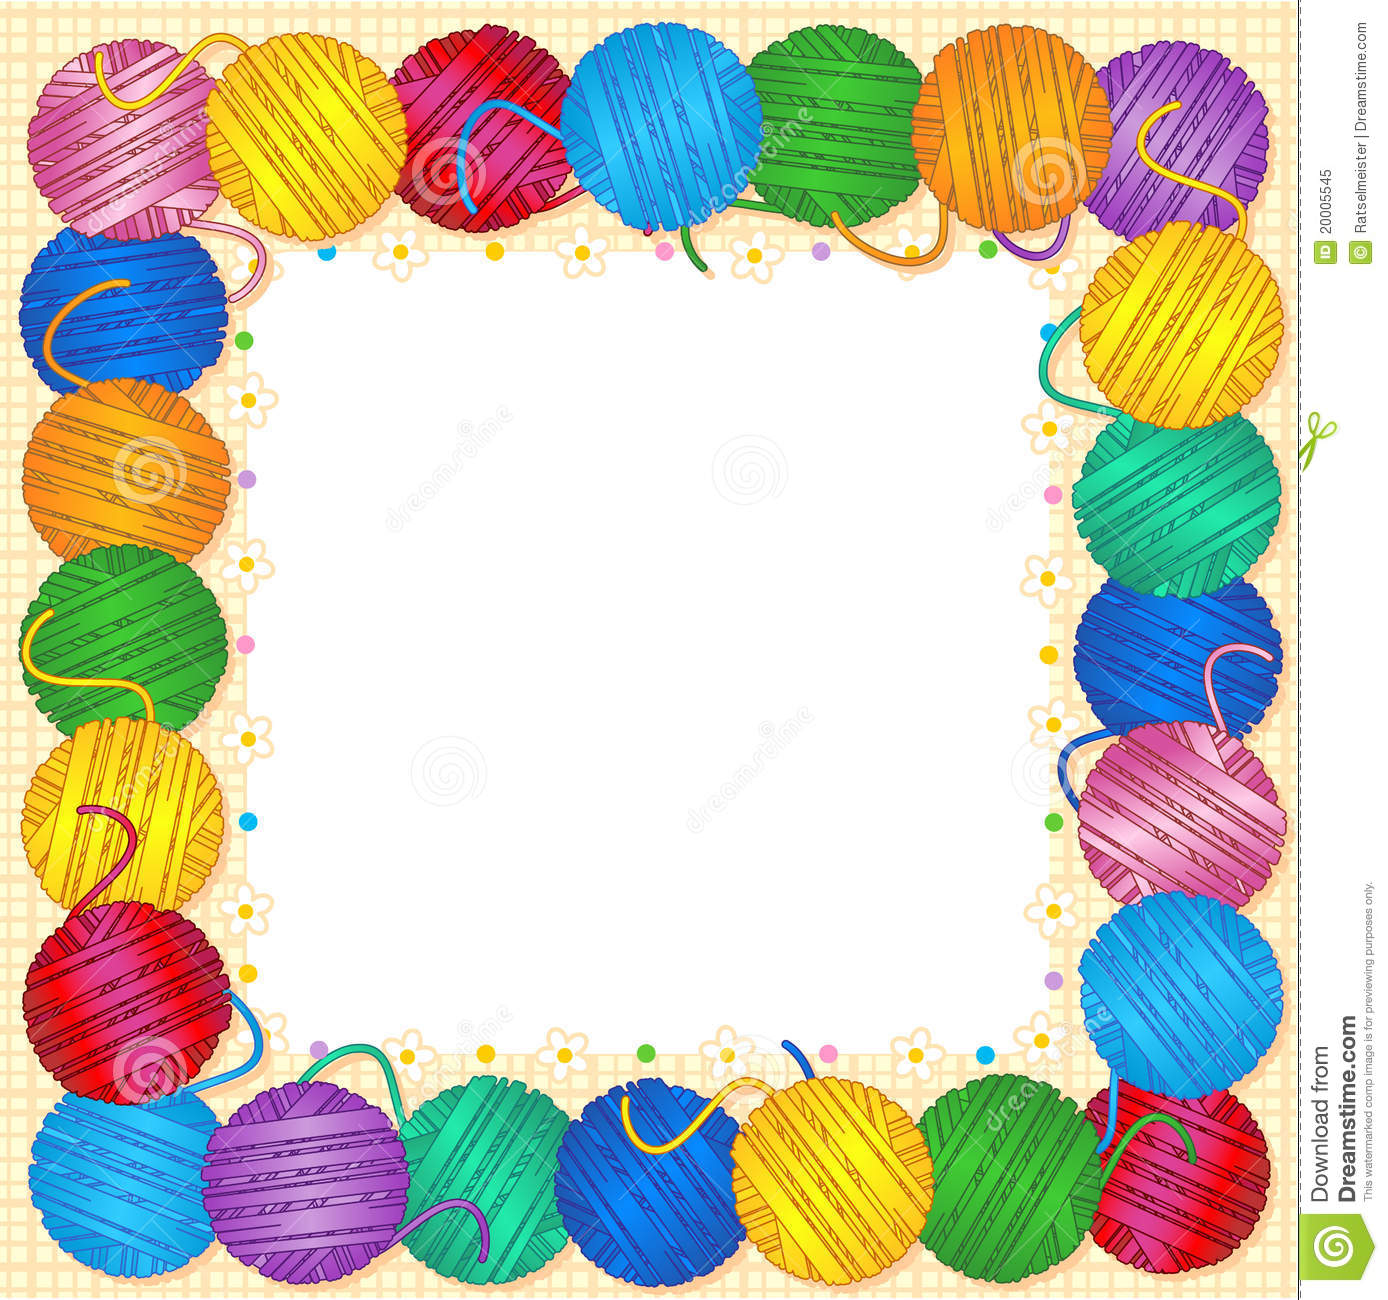 Free Knitting Icons Clipart : Knitting frame royalty free stock photo image